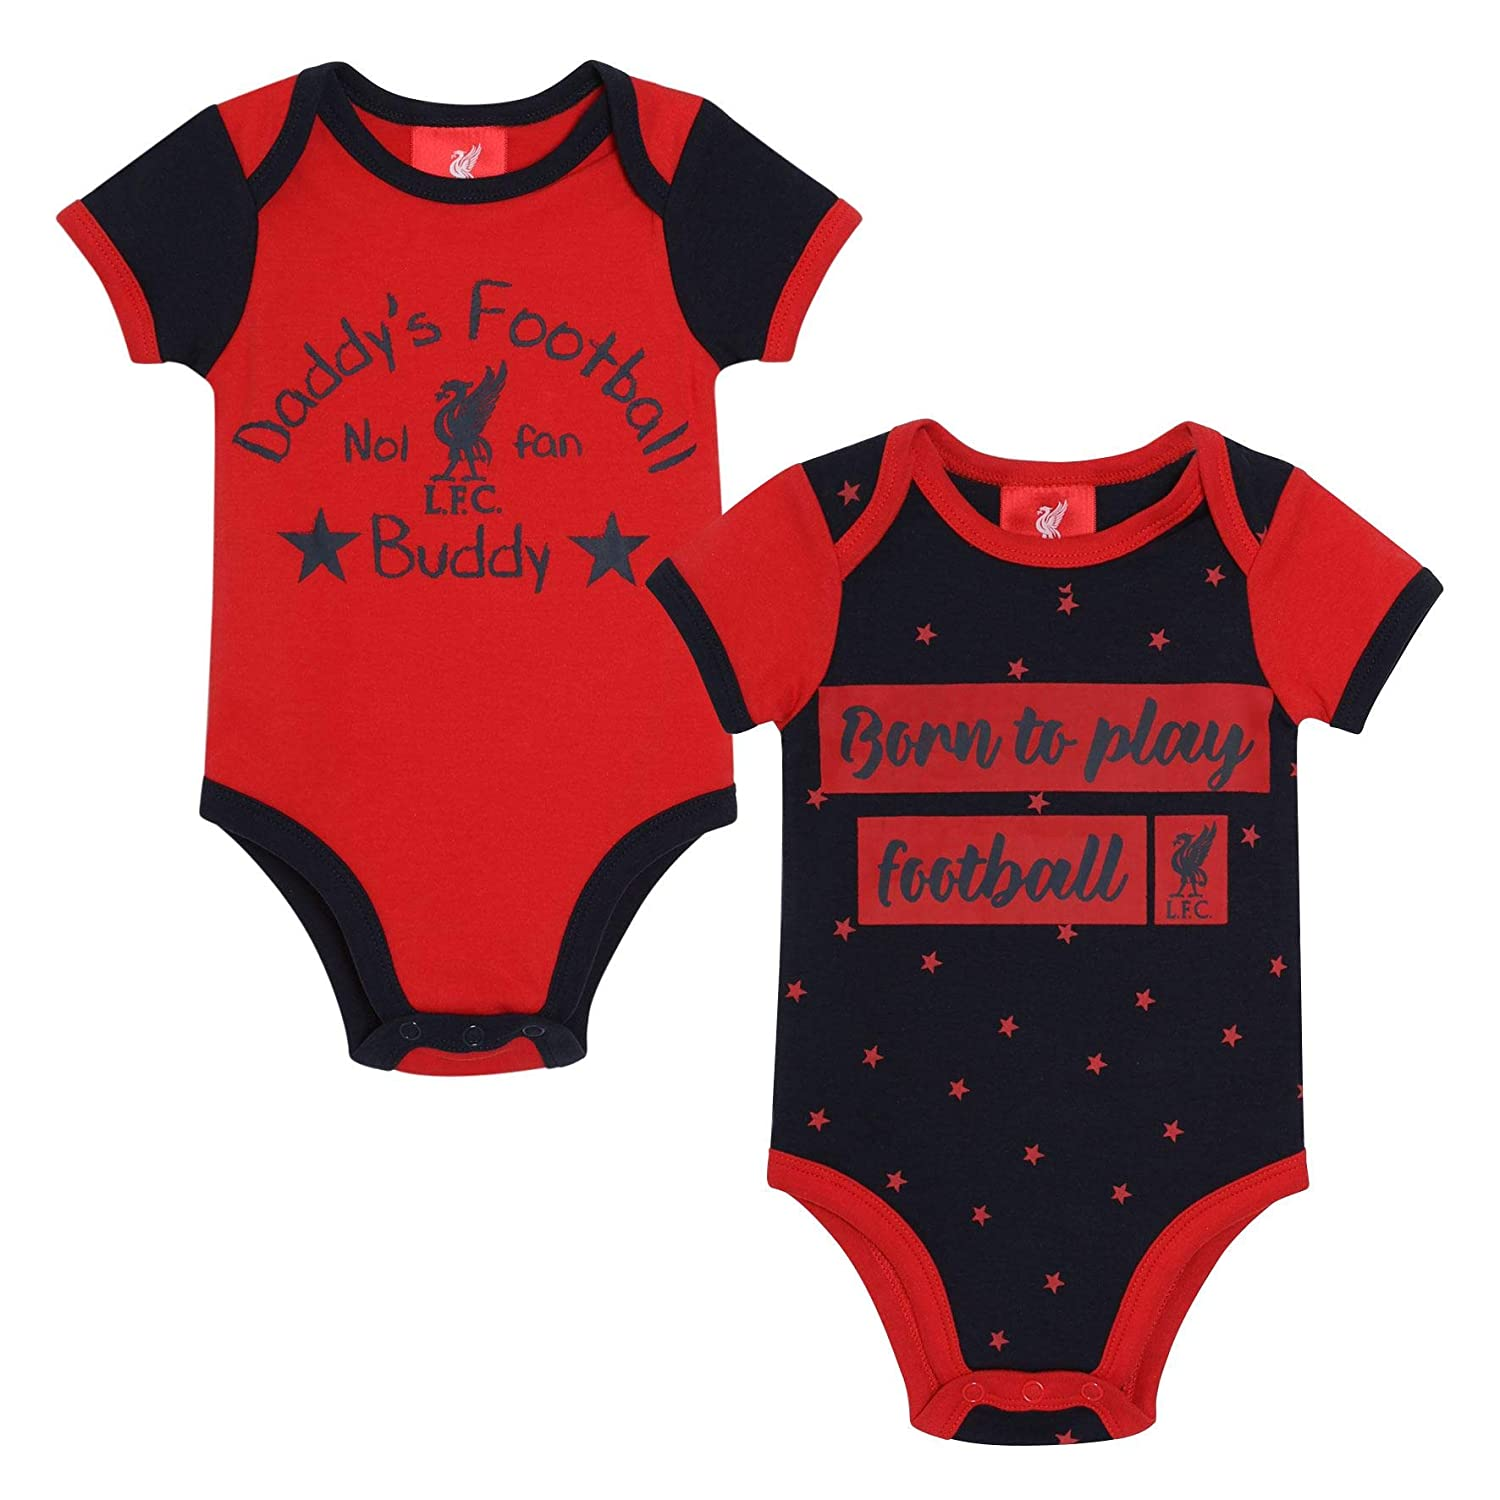 d91c05c9a4a5 Liverpool FC Red Baby Boy Football 2 Pack Bodysuits AW 18 19 LFC ...